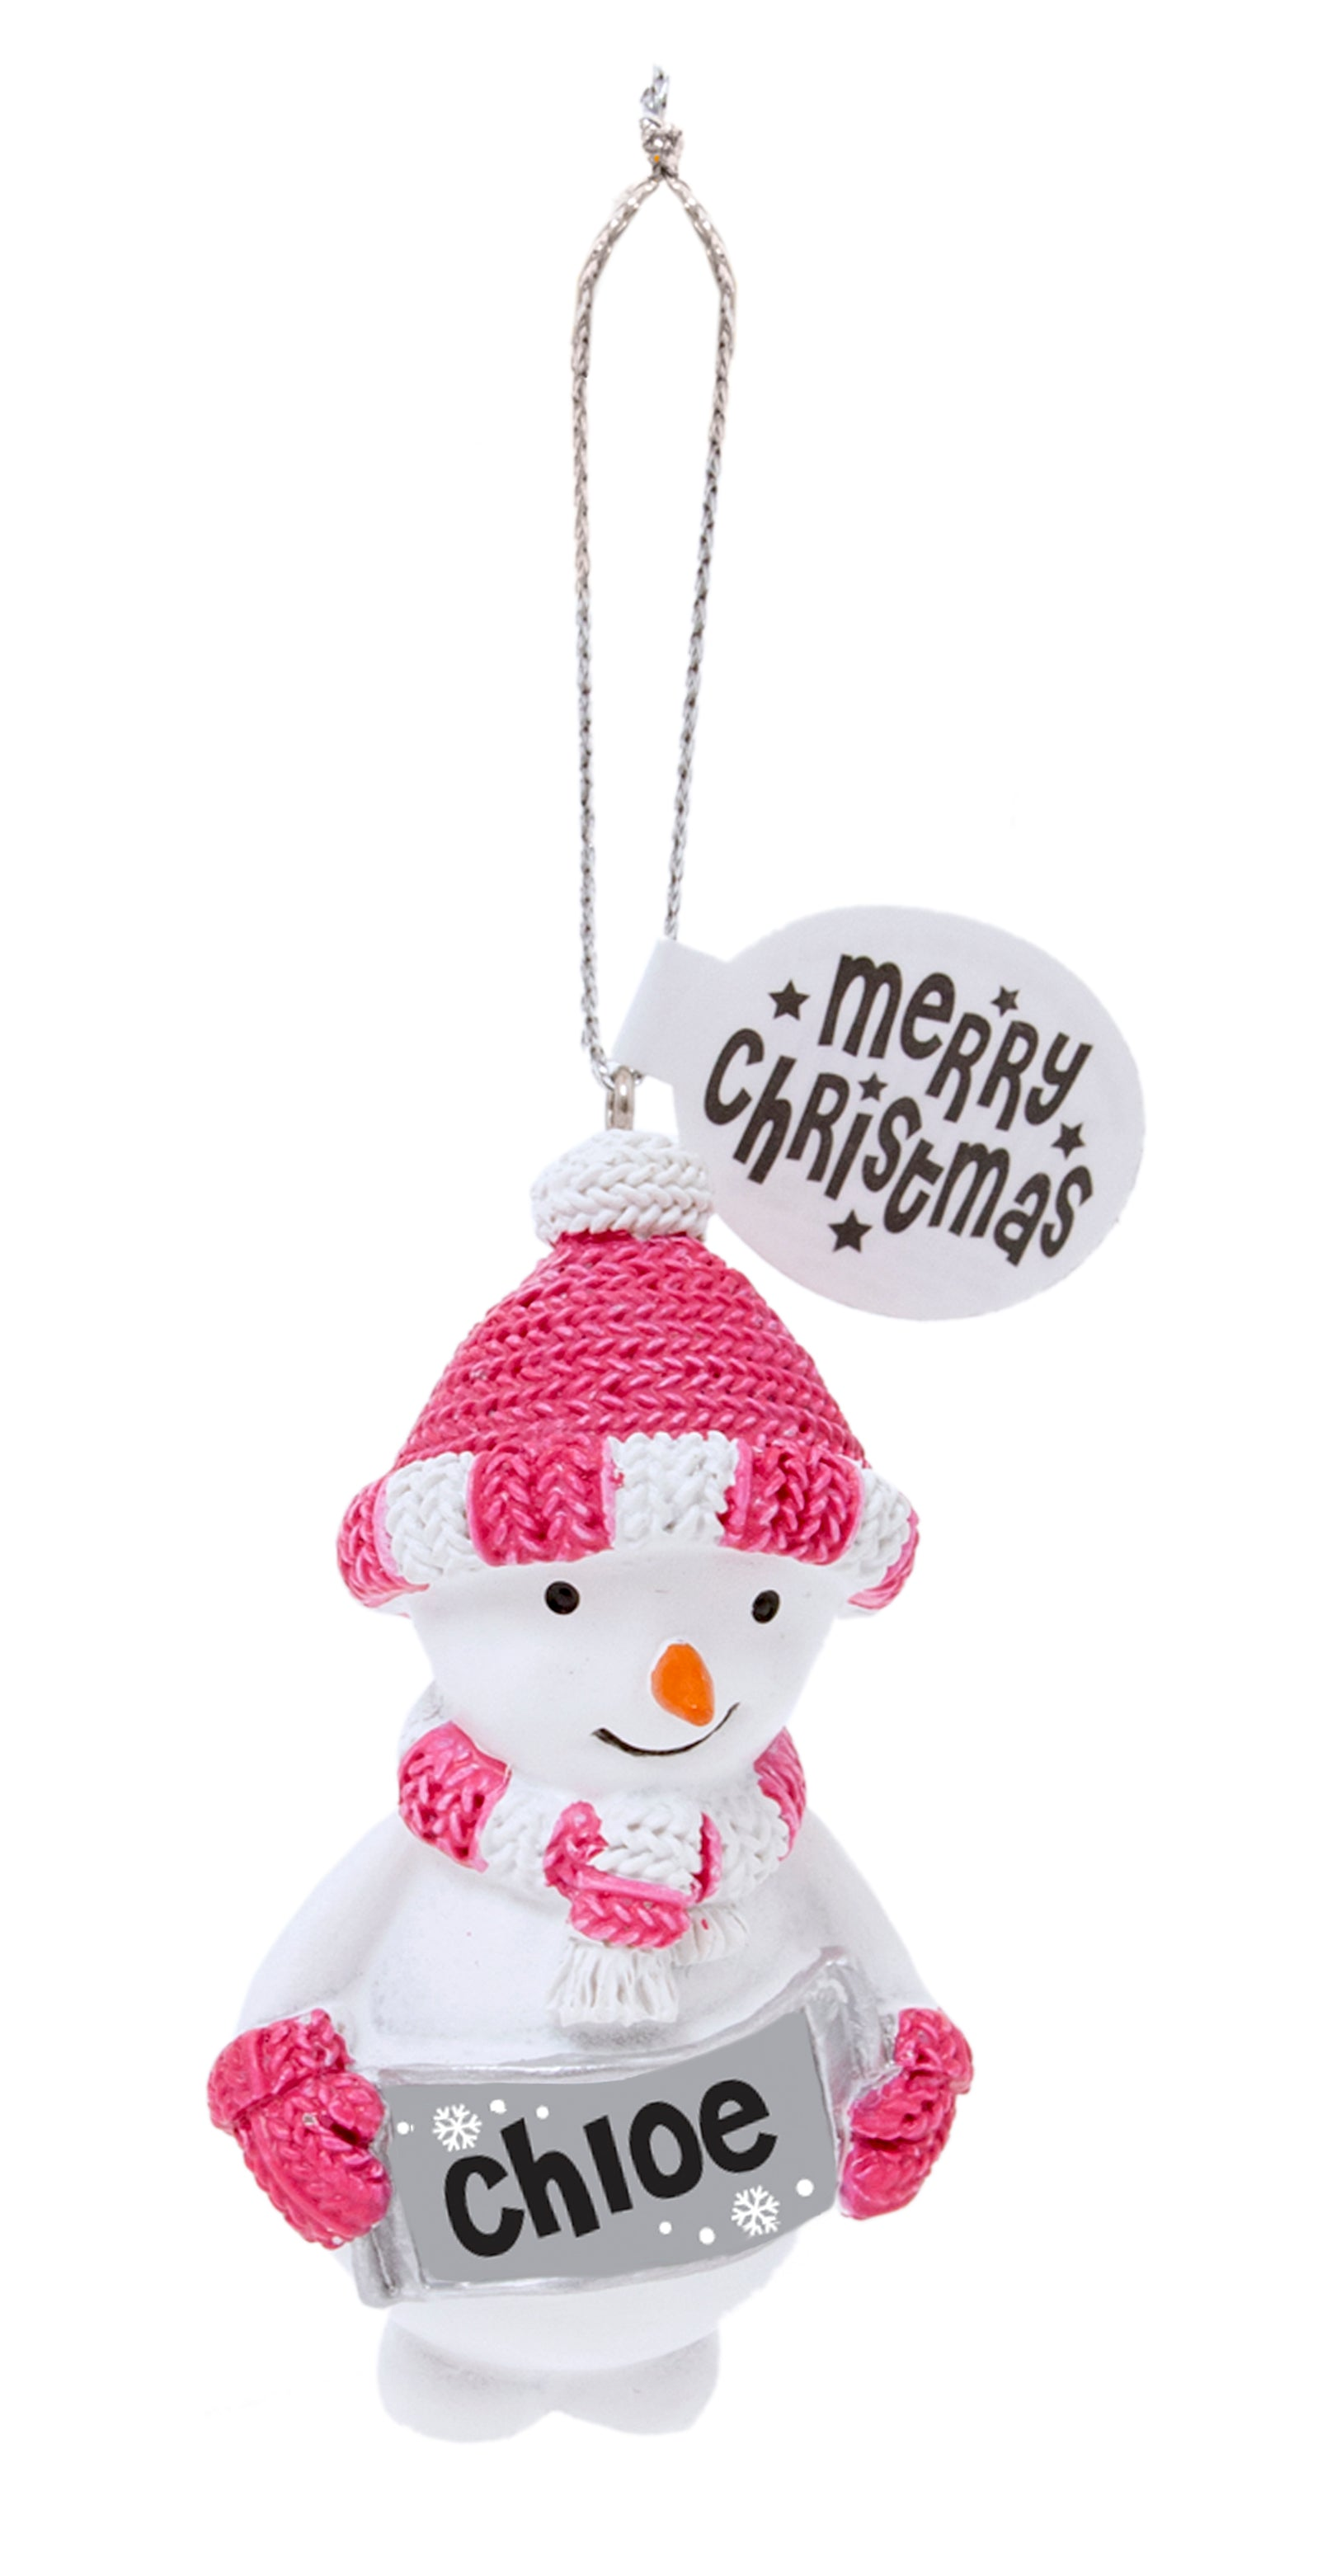 Gift Horse Online: H&H Festive Friends Tree Decorations - Chloe on